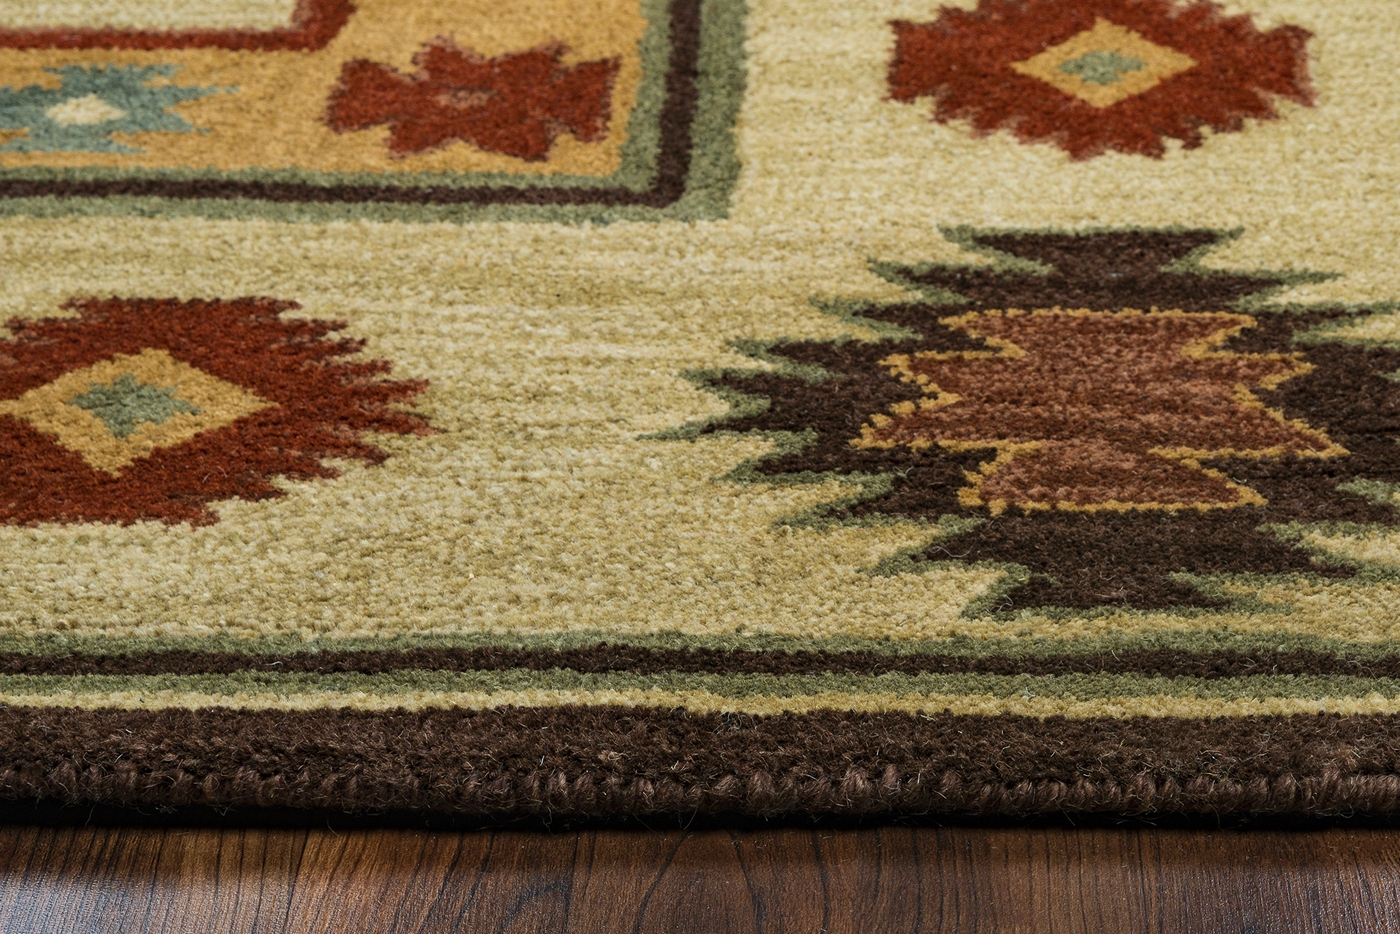 Southwest Tribal Border Wool Area Rug In Tan Sage Navy Red